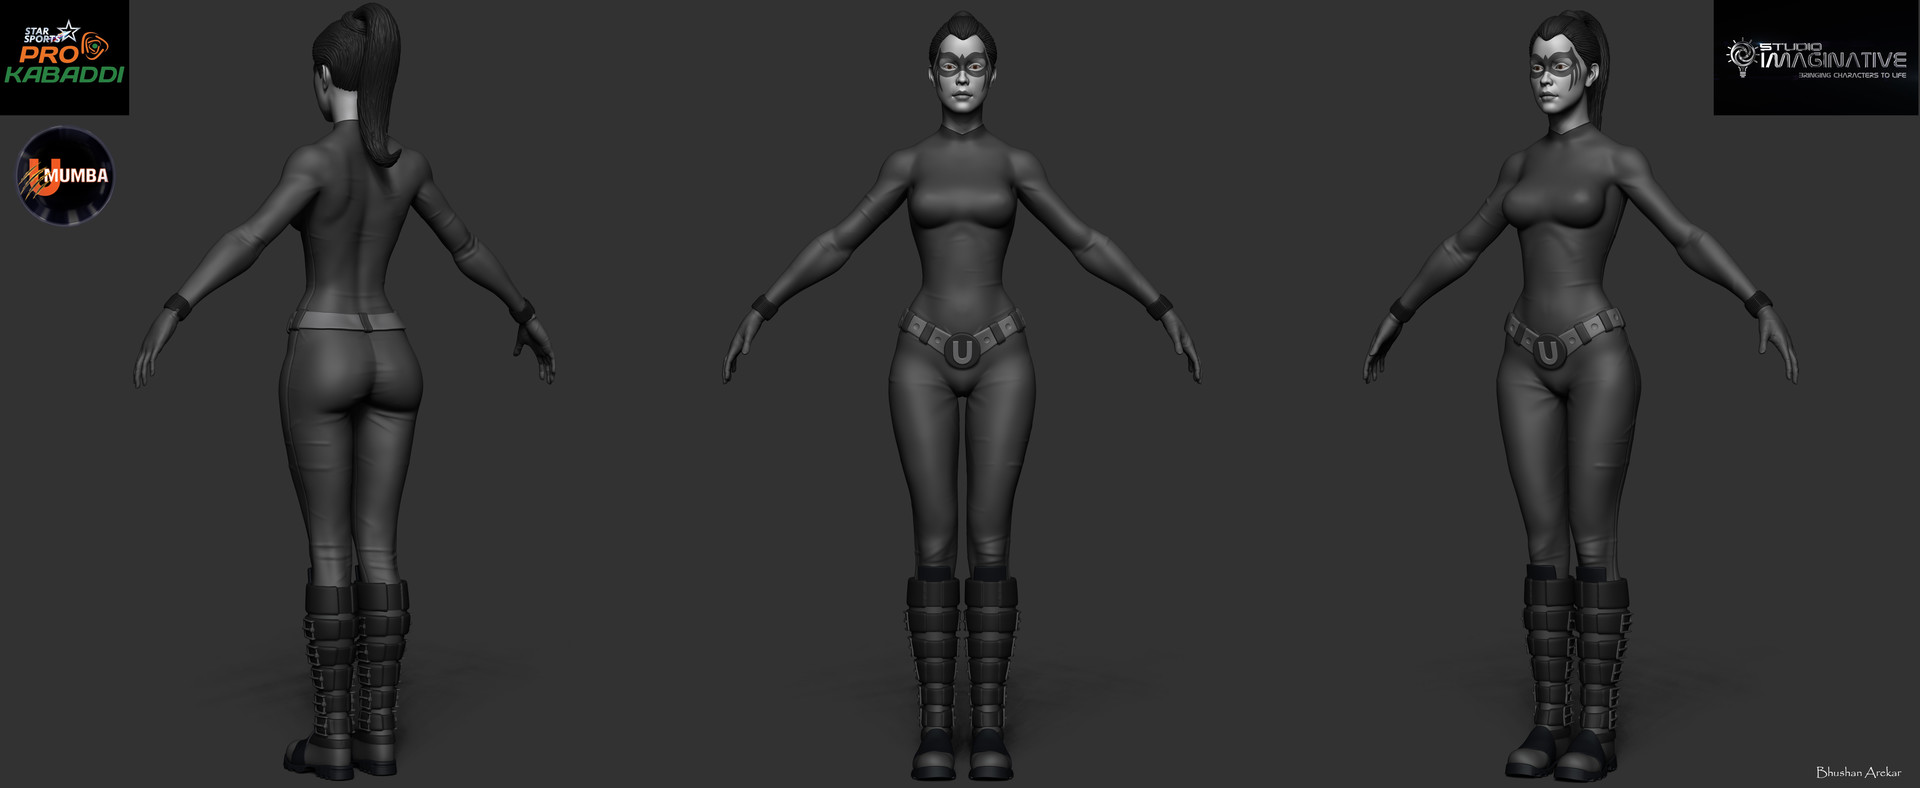 Responsible for modeling,sculpting,UV/Bake and first stage texturing.